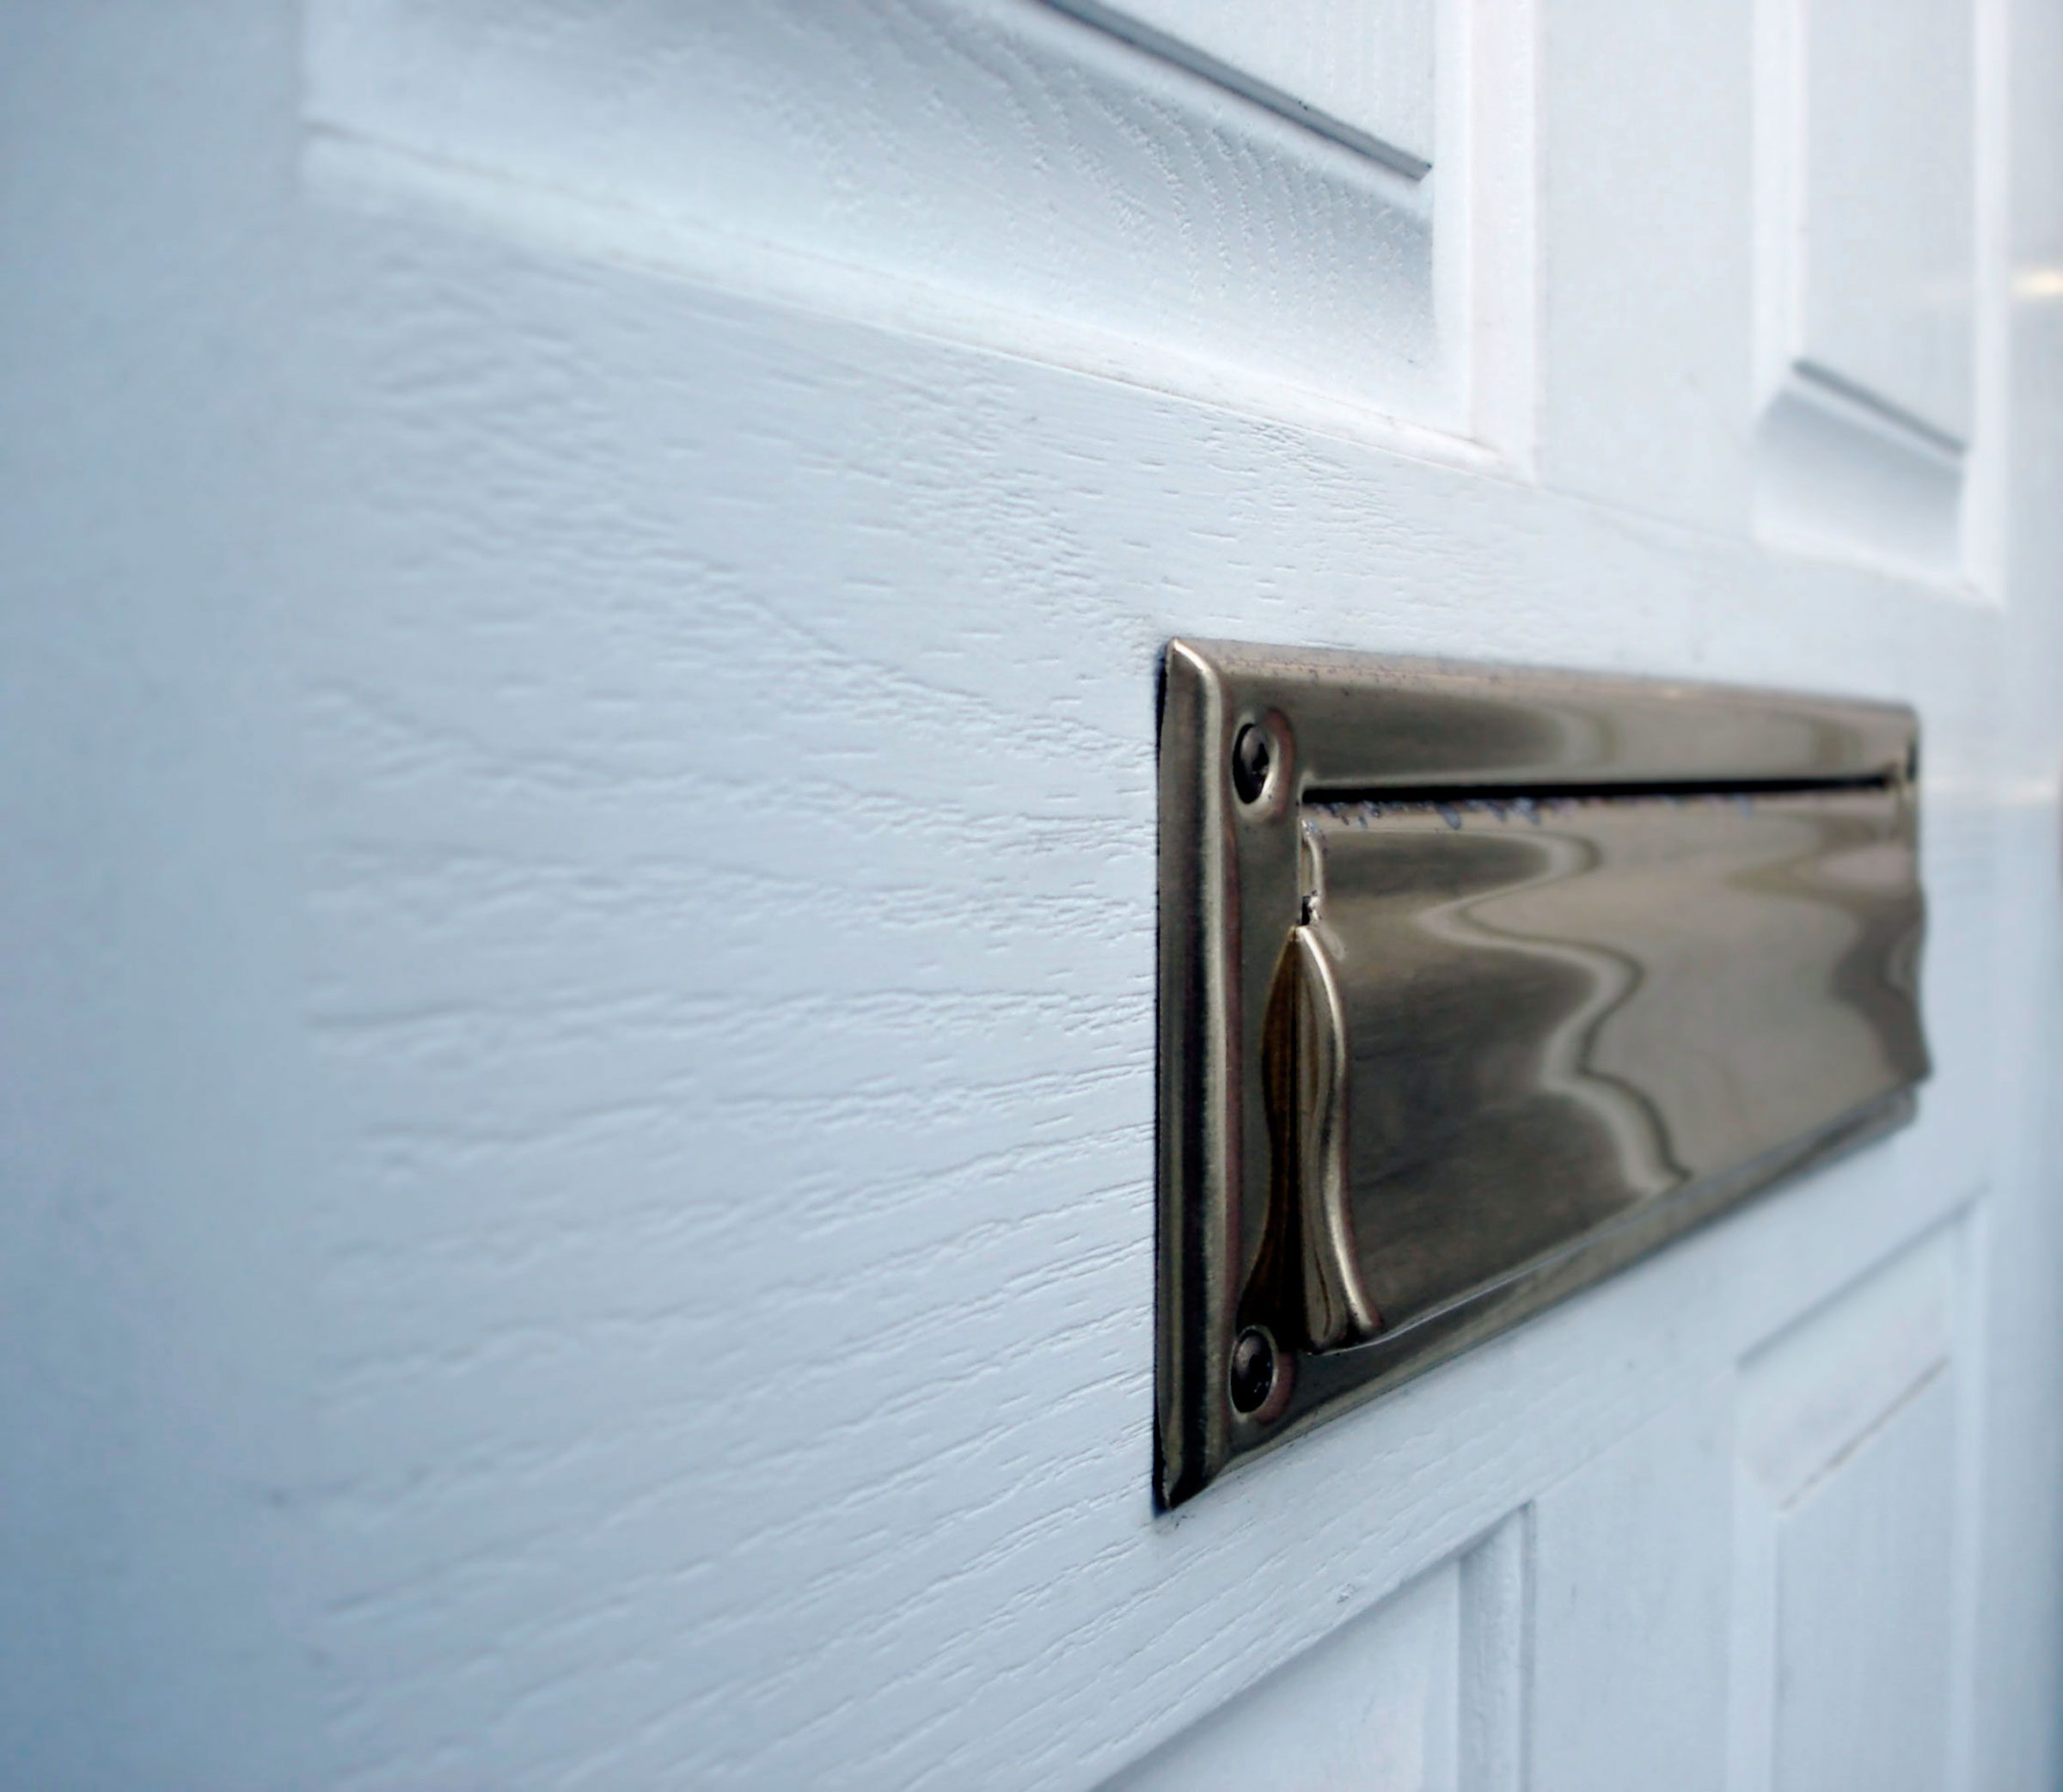 3. A mail slot goes against the wood grain, weakening the horizontal integrity of  a door and making it easier to kick in.